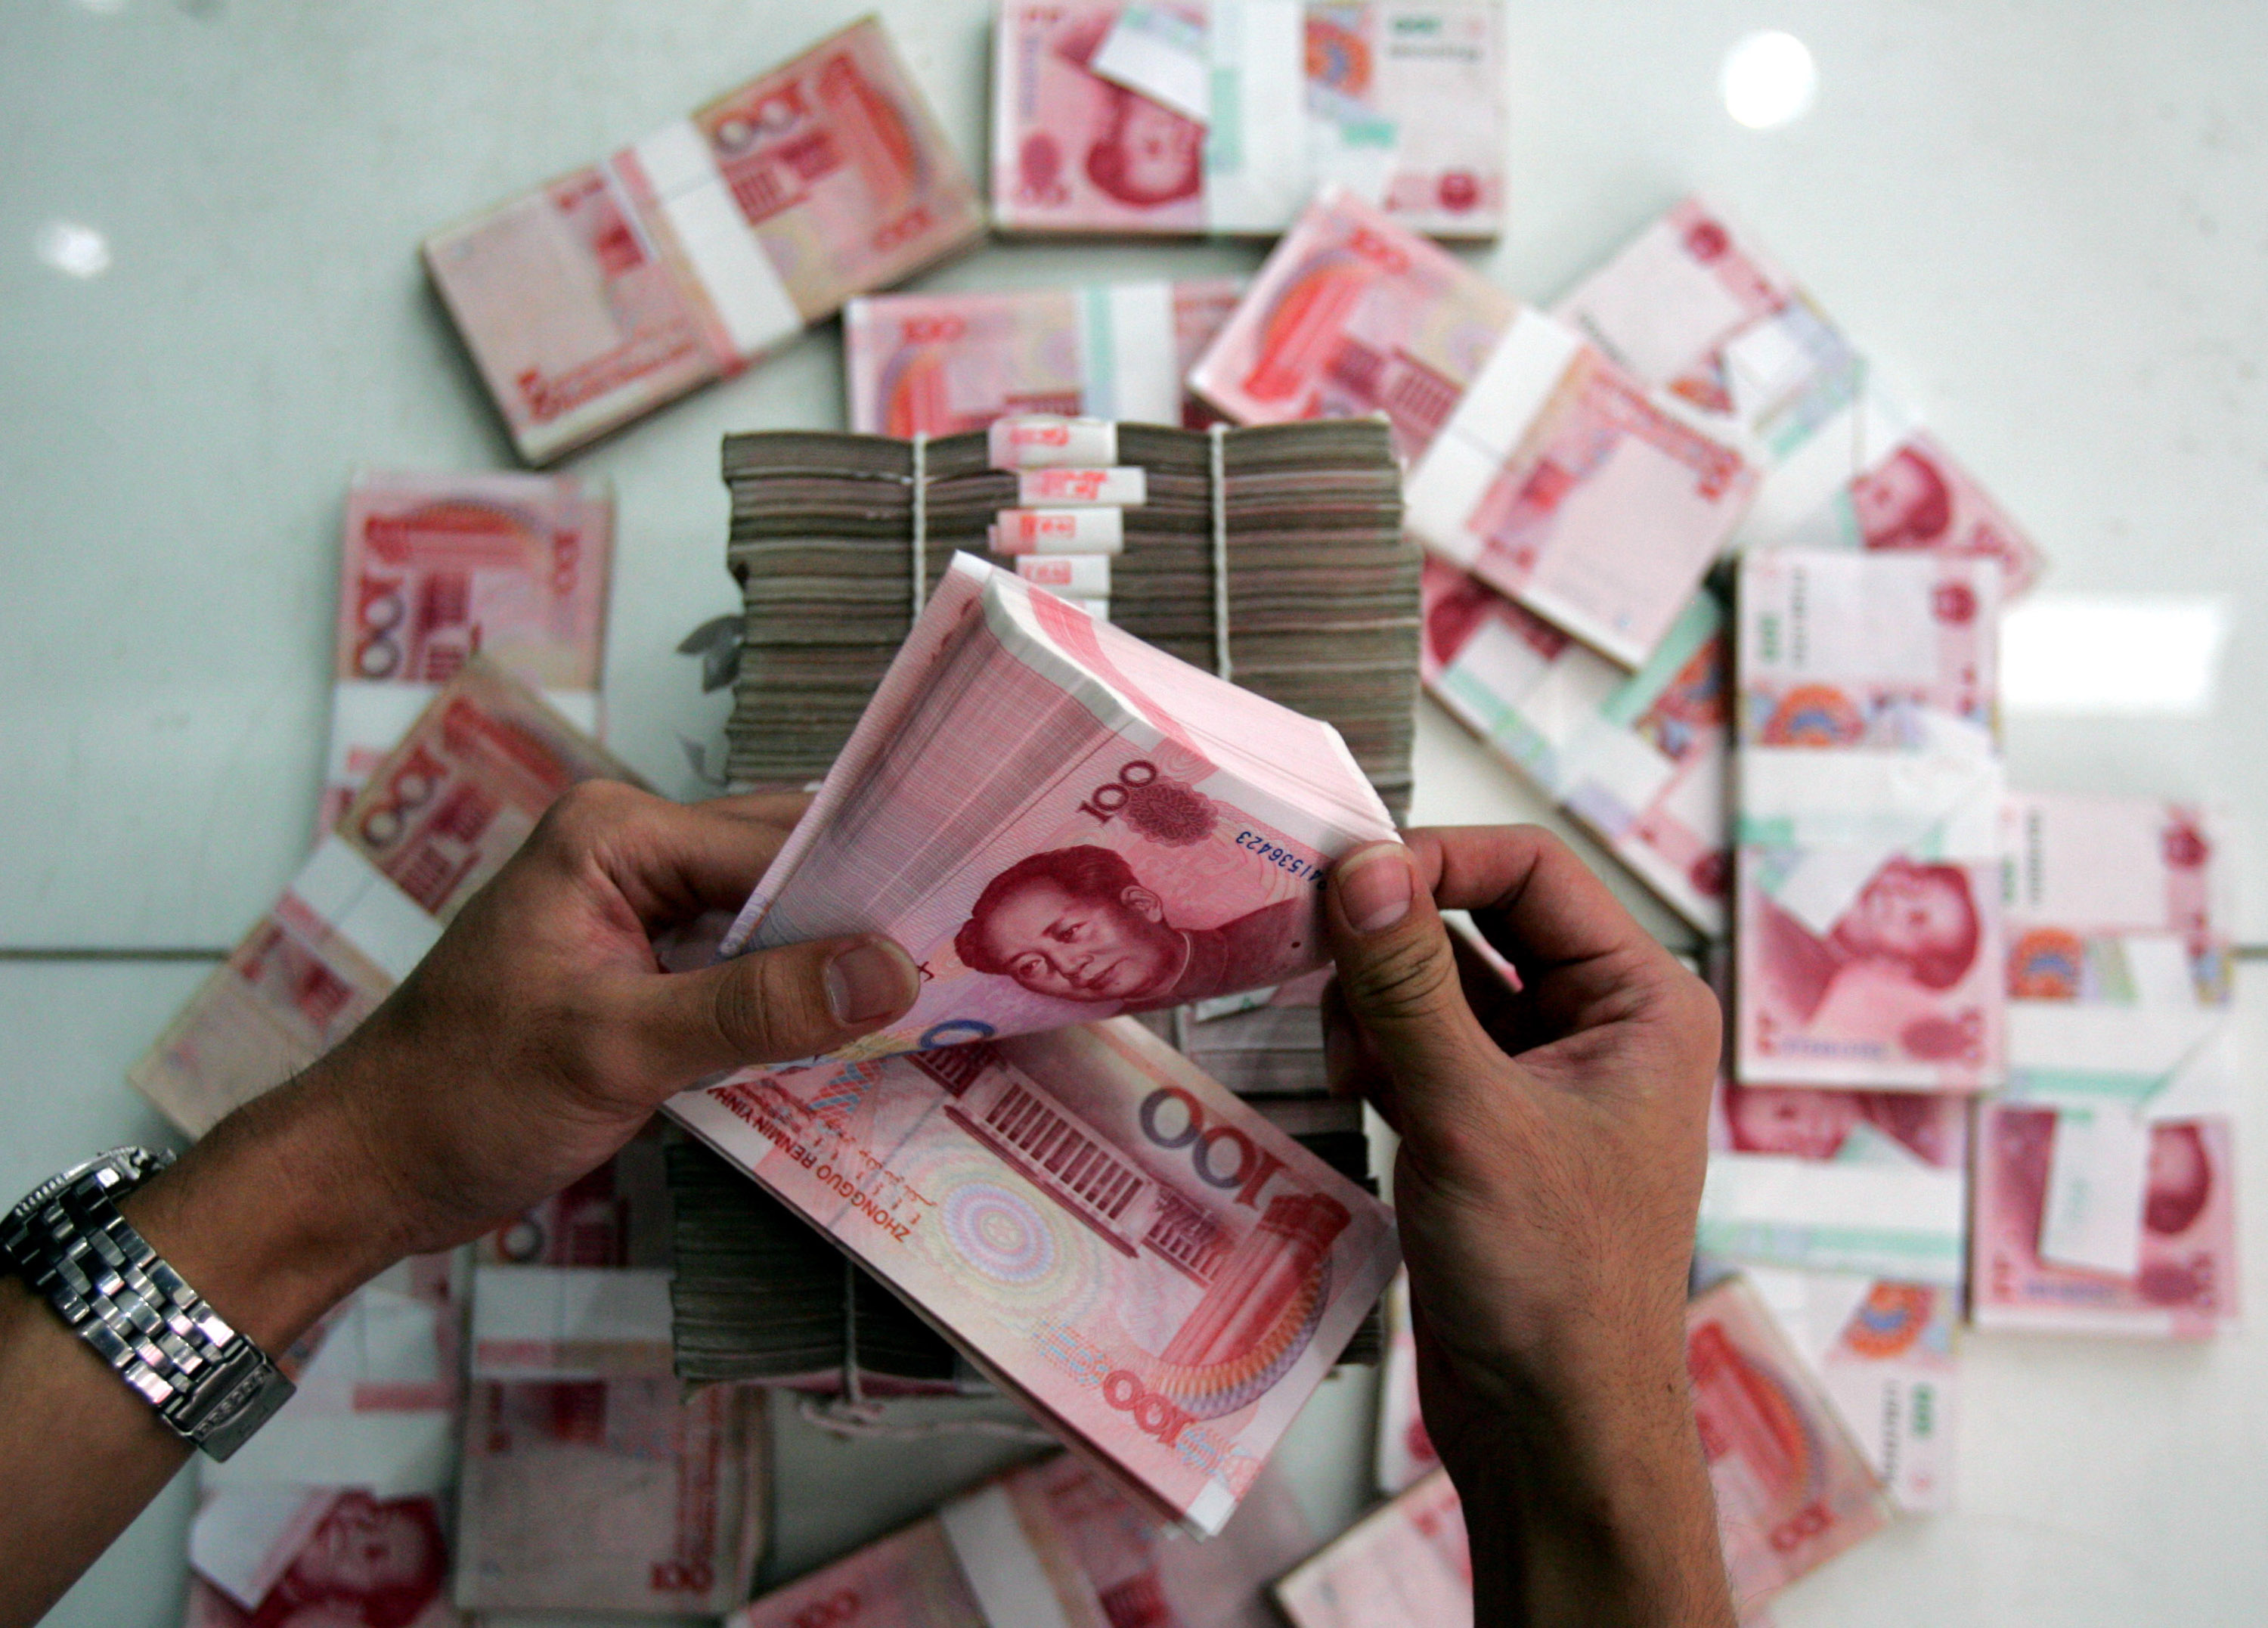 A clerk counts stacks of Chinese yuan at a bank on July 22, 2005 in Beijing, China.